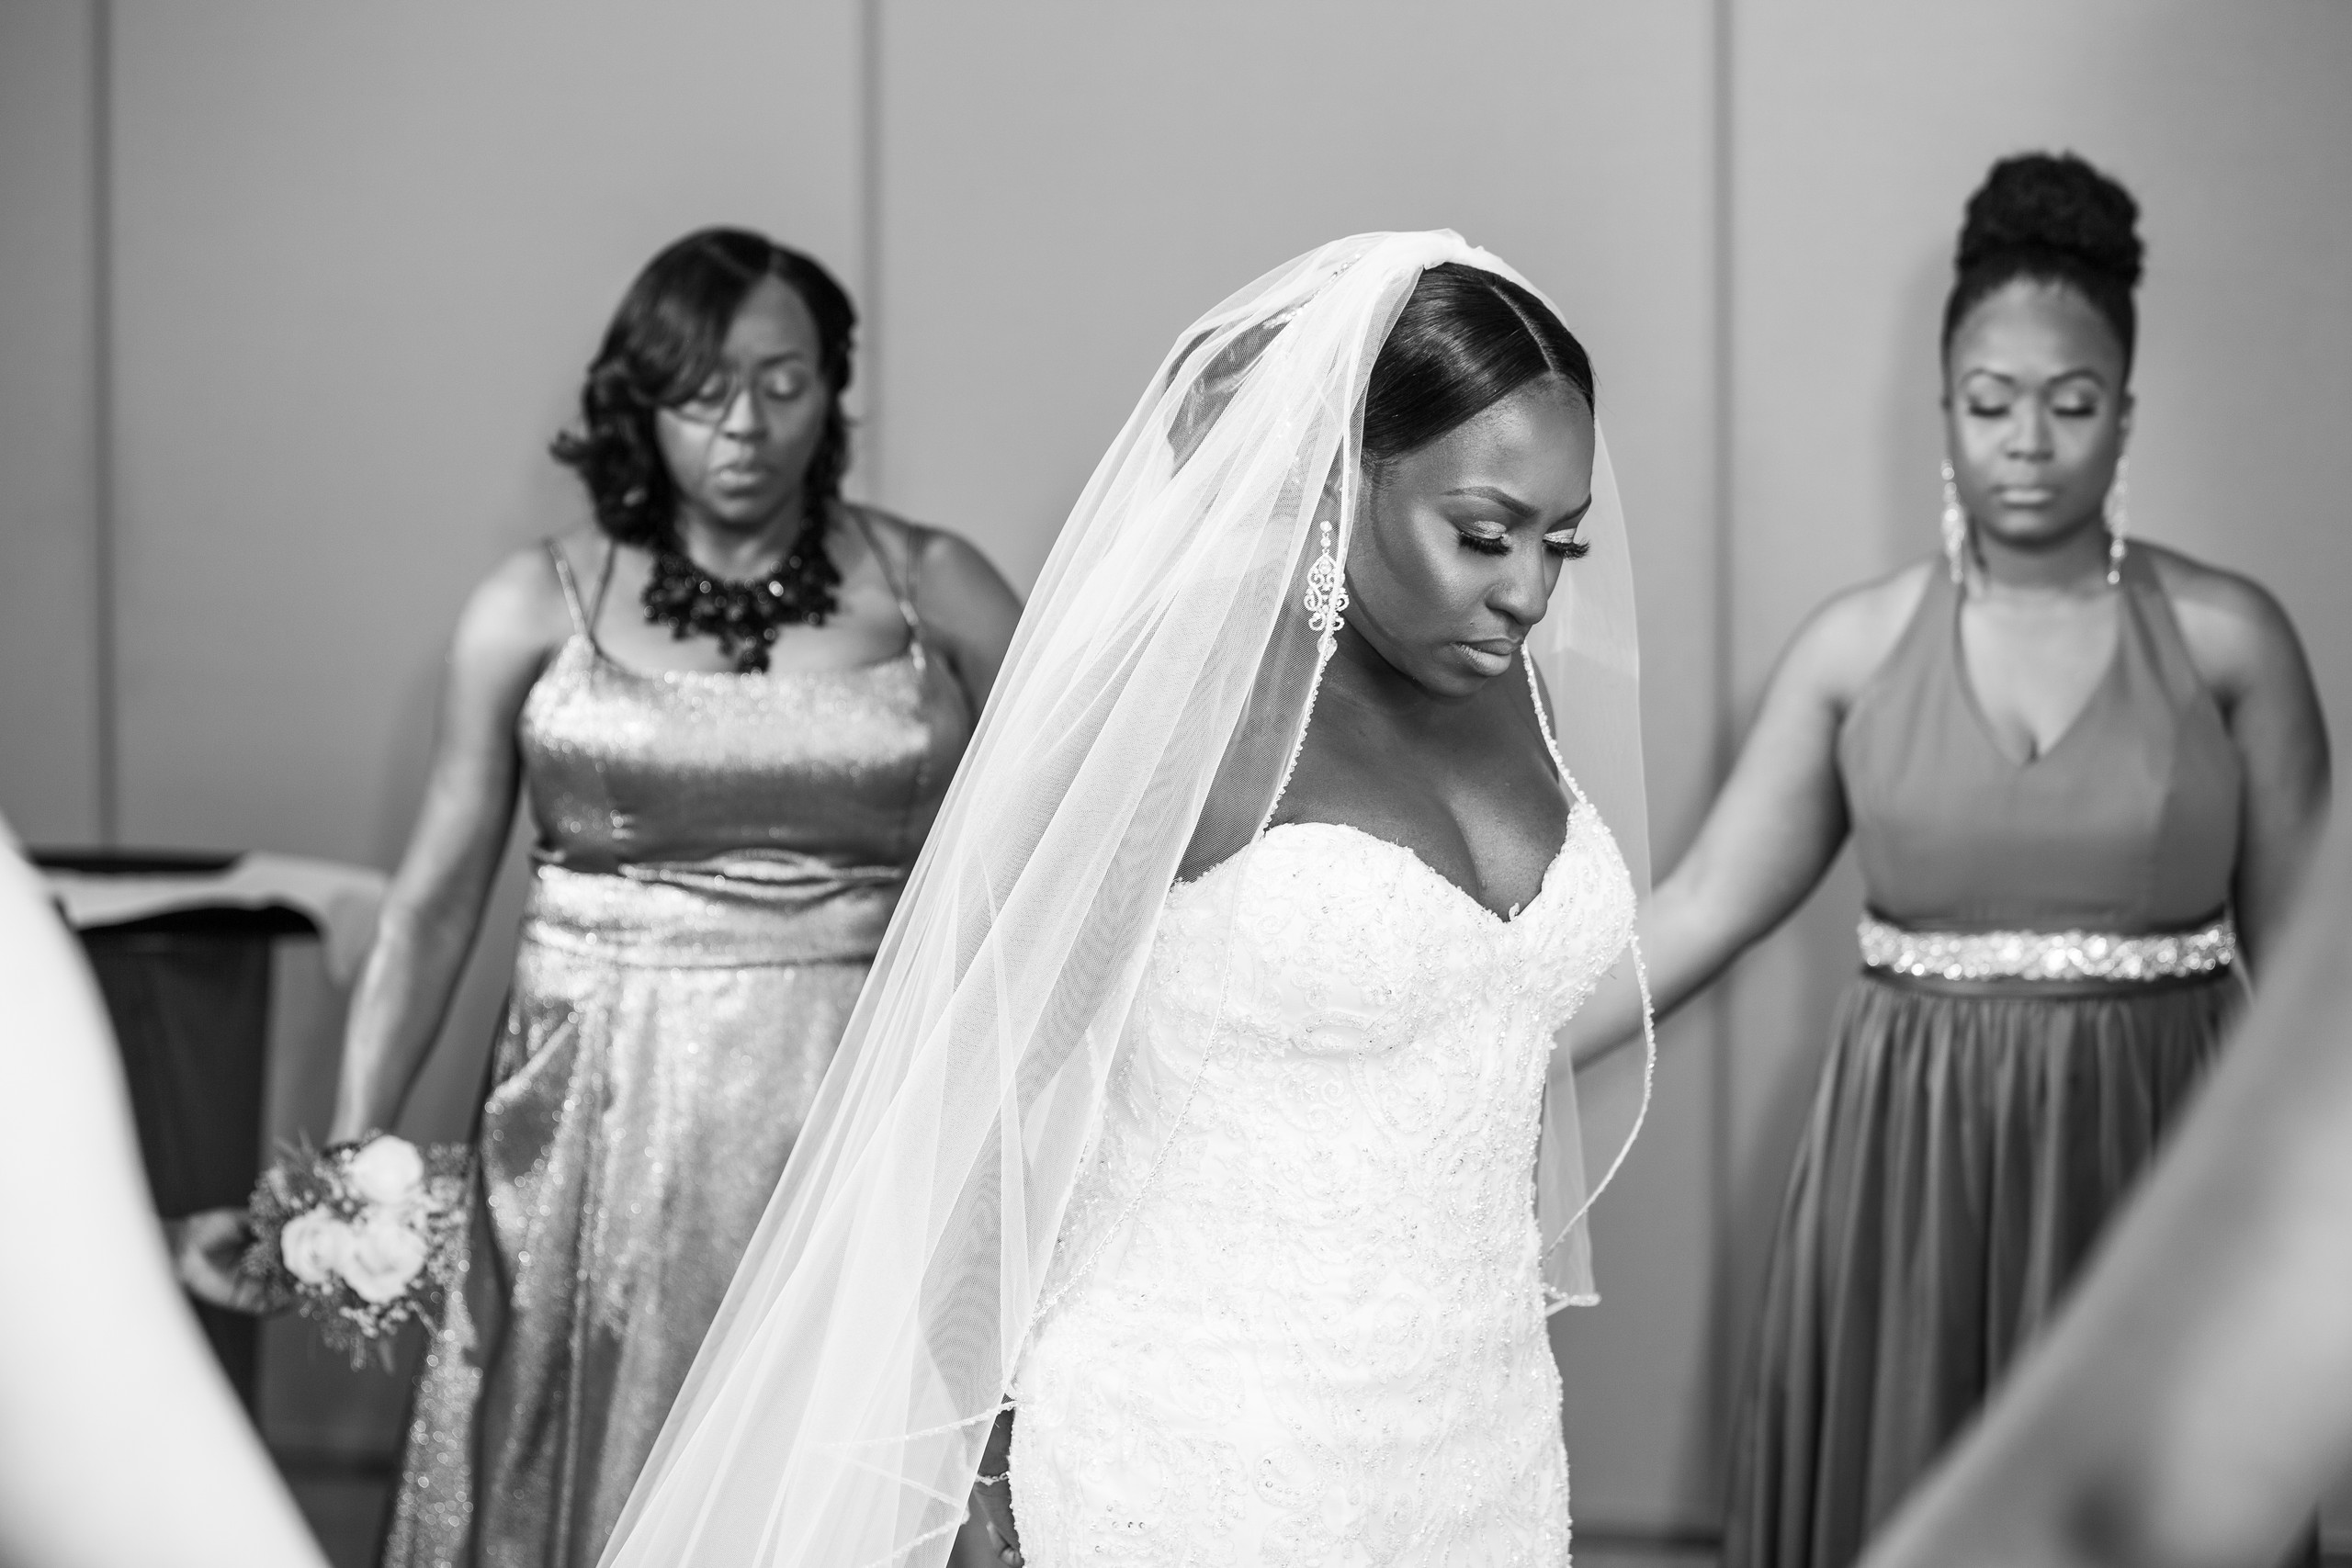 Bride praying with her family and bridal party before the wedding ceremony at the Hilton Main in Norfolk, Virginia.